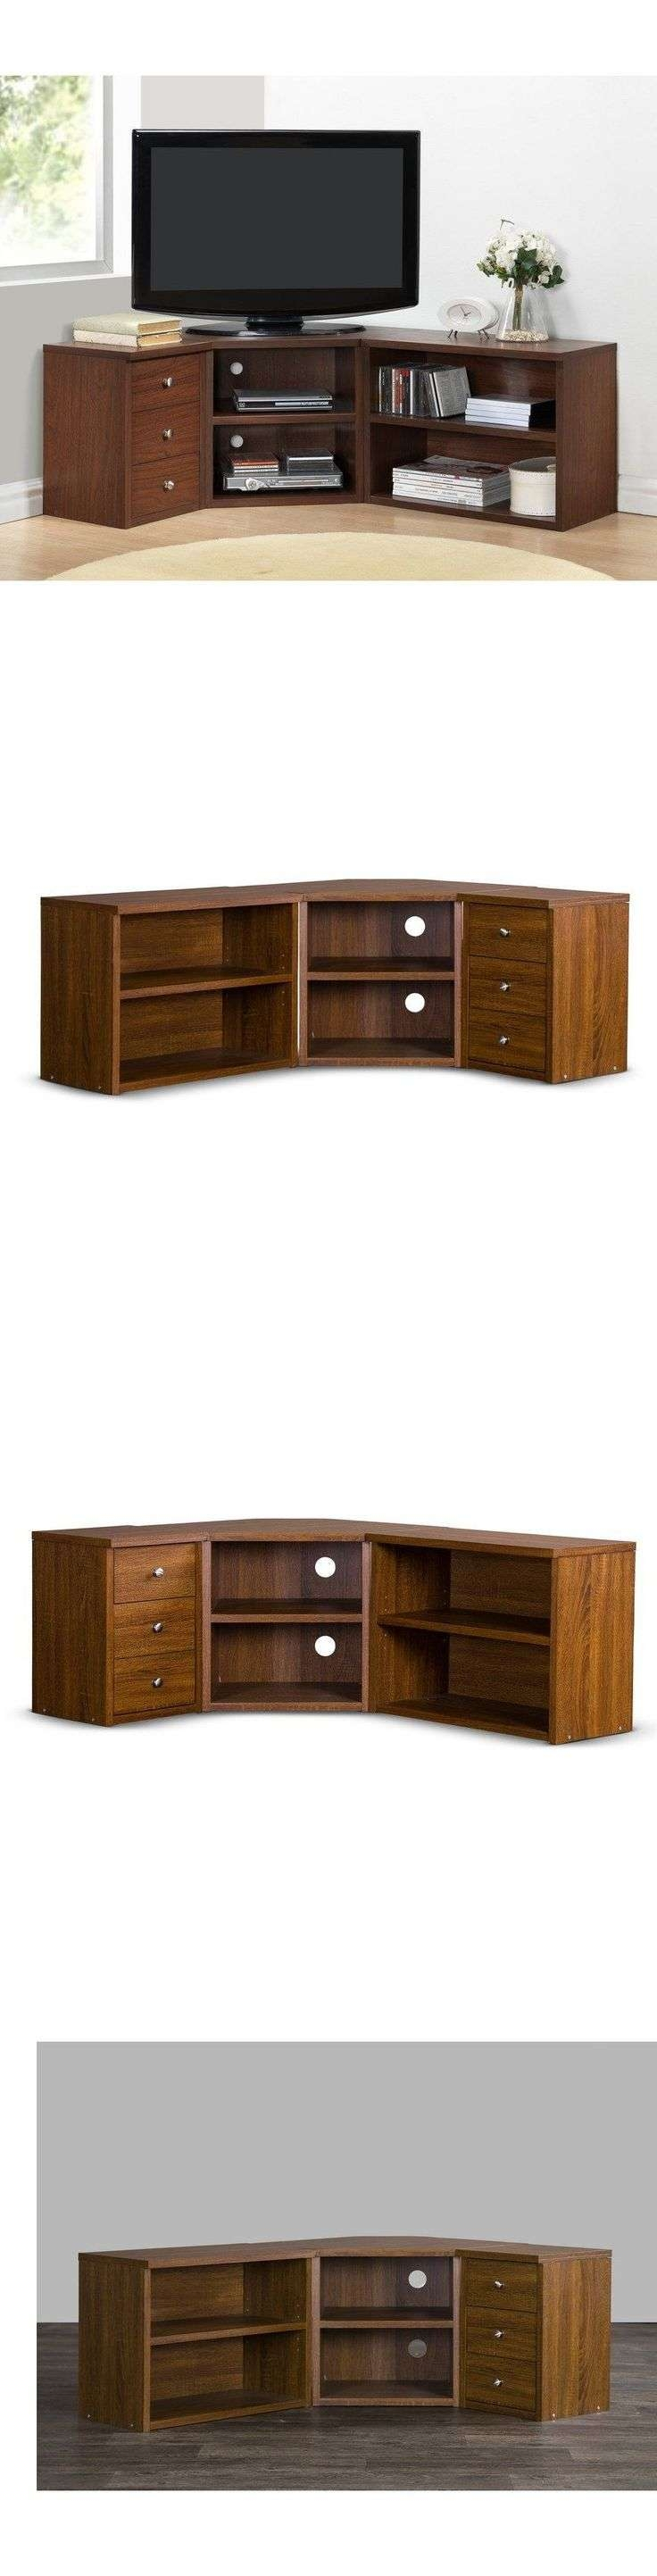 Tv : Astounding Light Oak Corner Tv Stands Amazing Oak Corner Tv Inside Light Oak Corner Tv Stands (View 13 of 20)